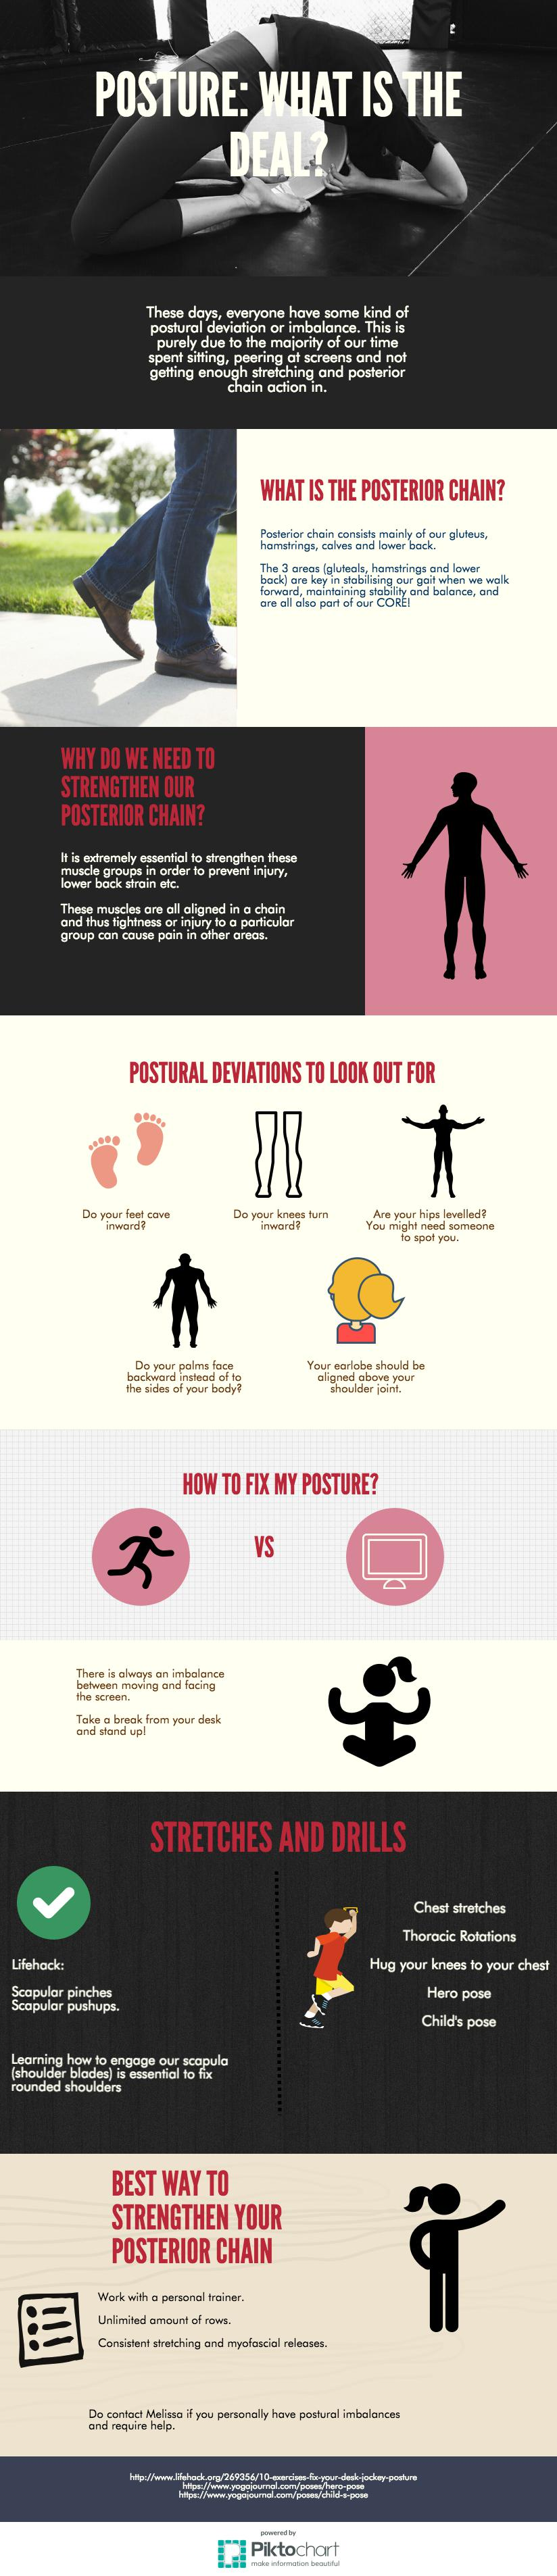 If you need face to face observations and posture corrections, let's    meet each other in person   !